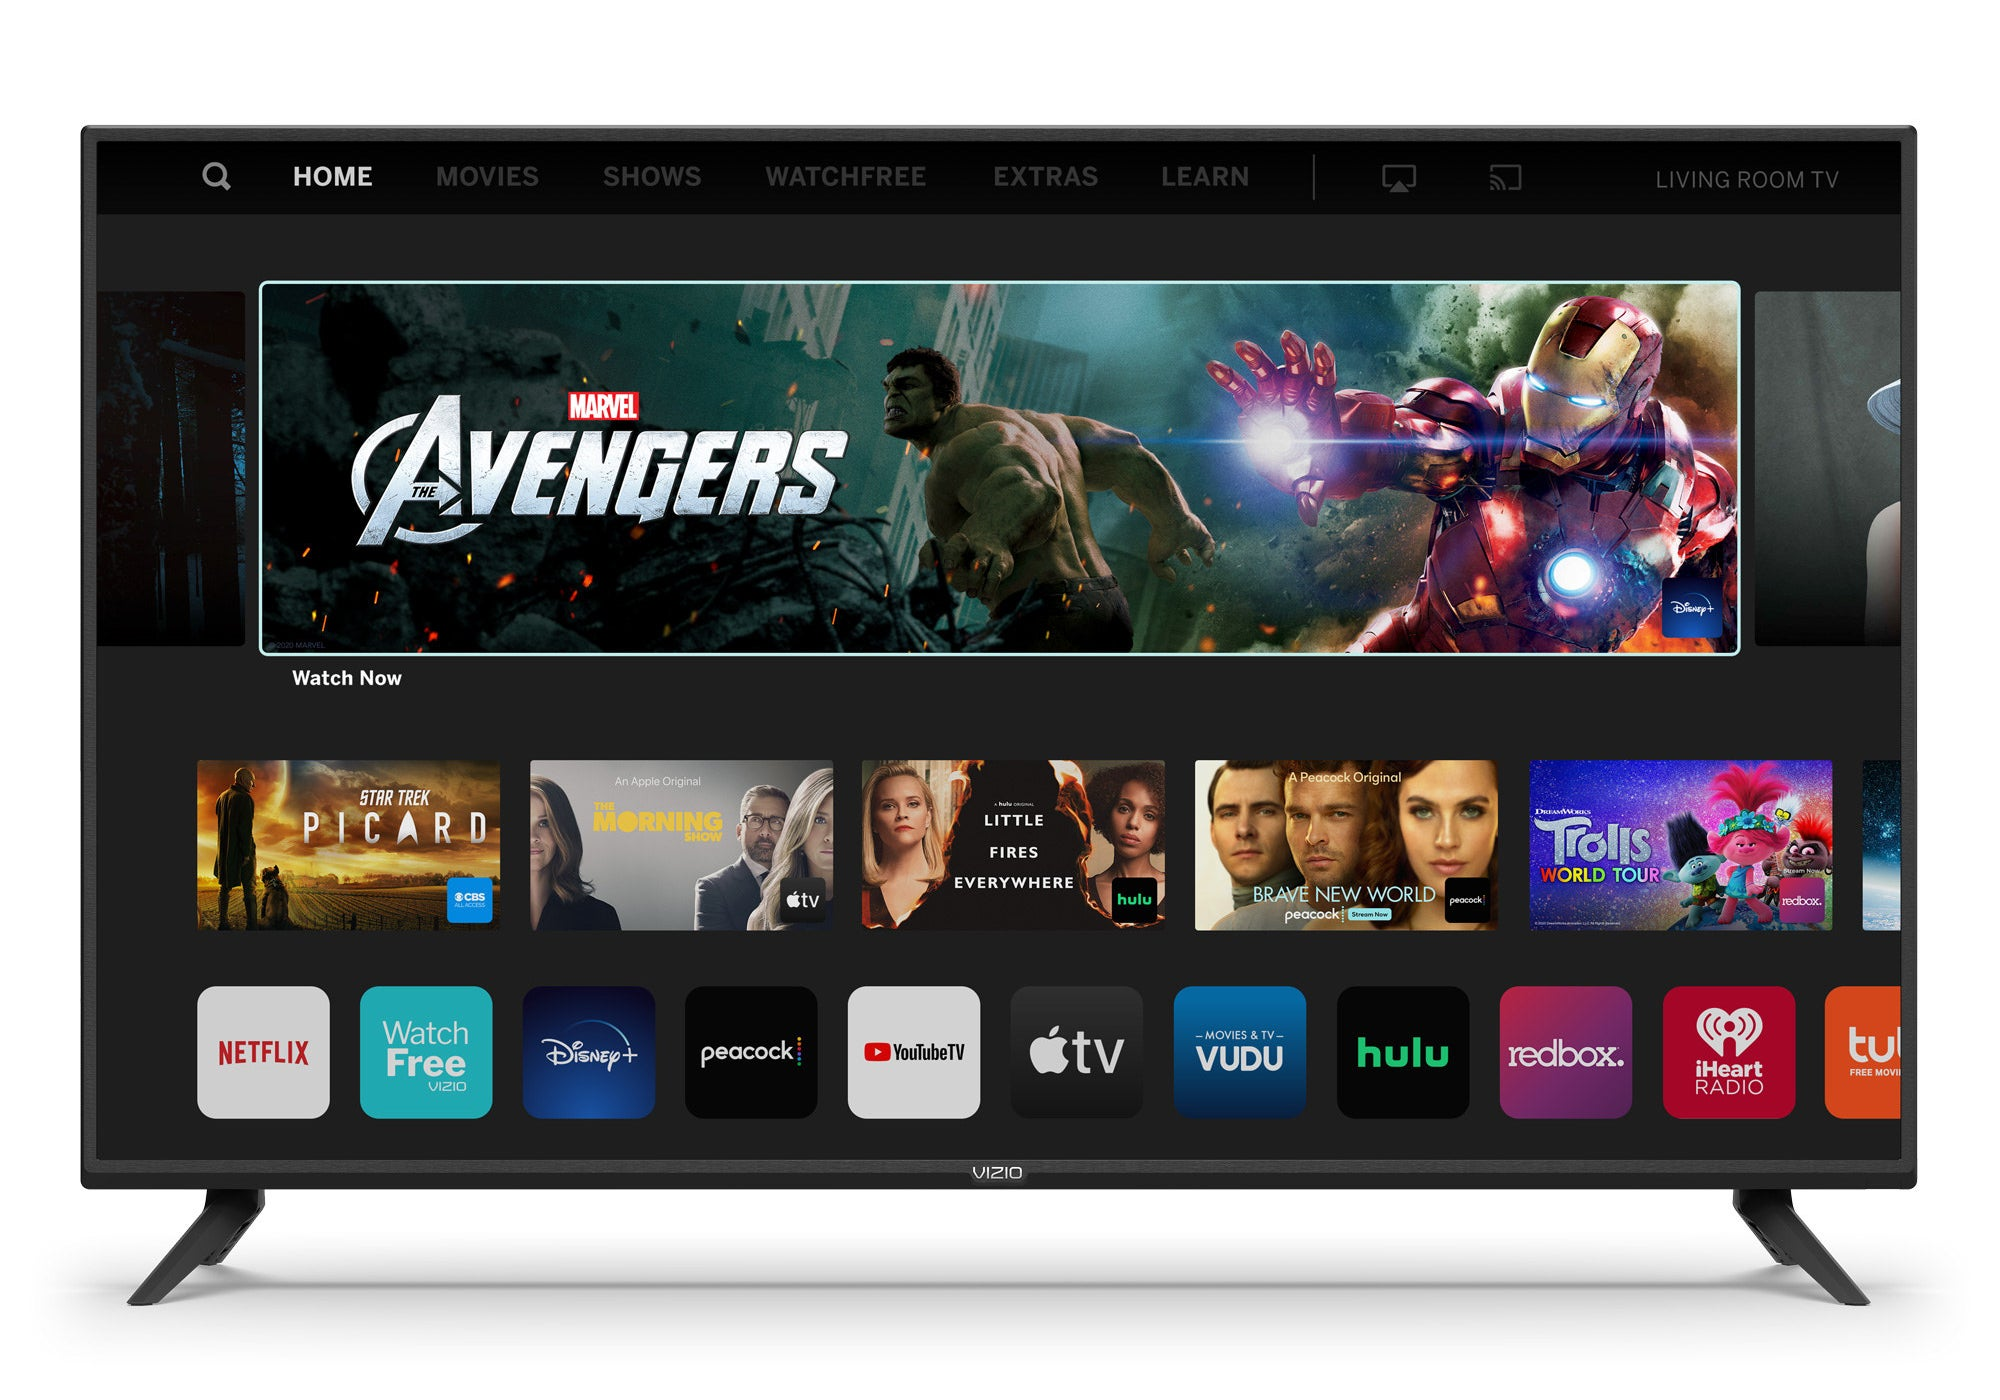 vizio tv with apps show on top